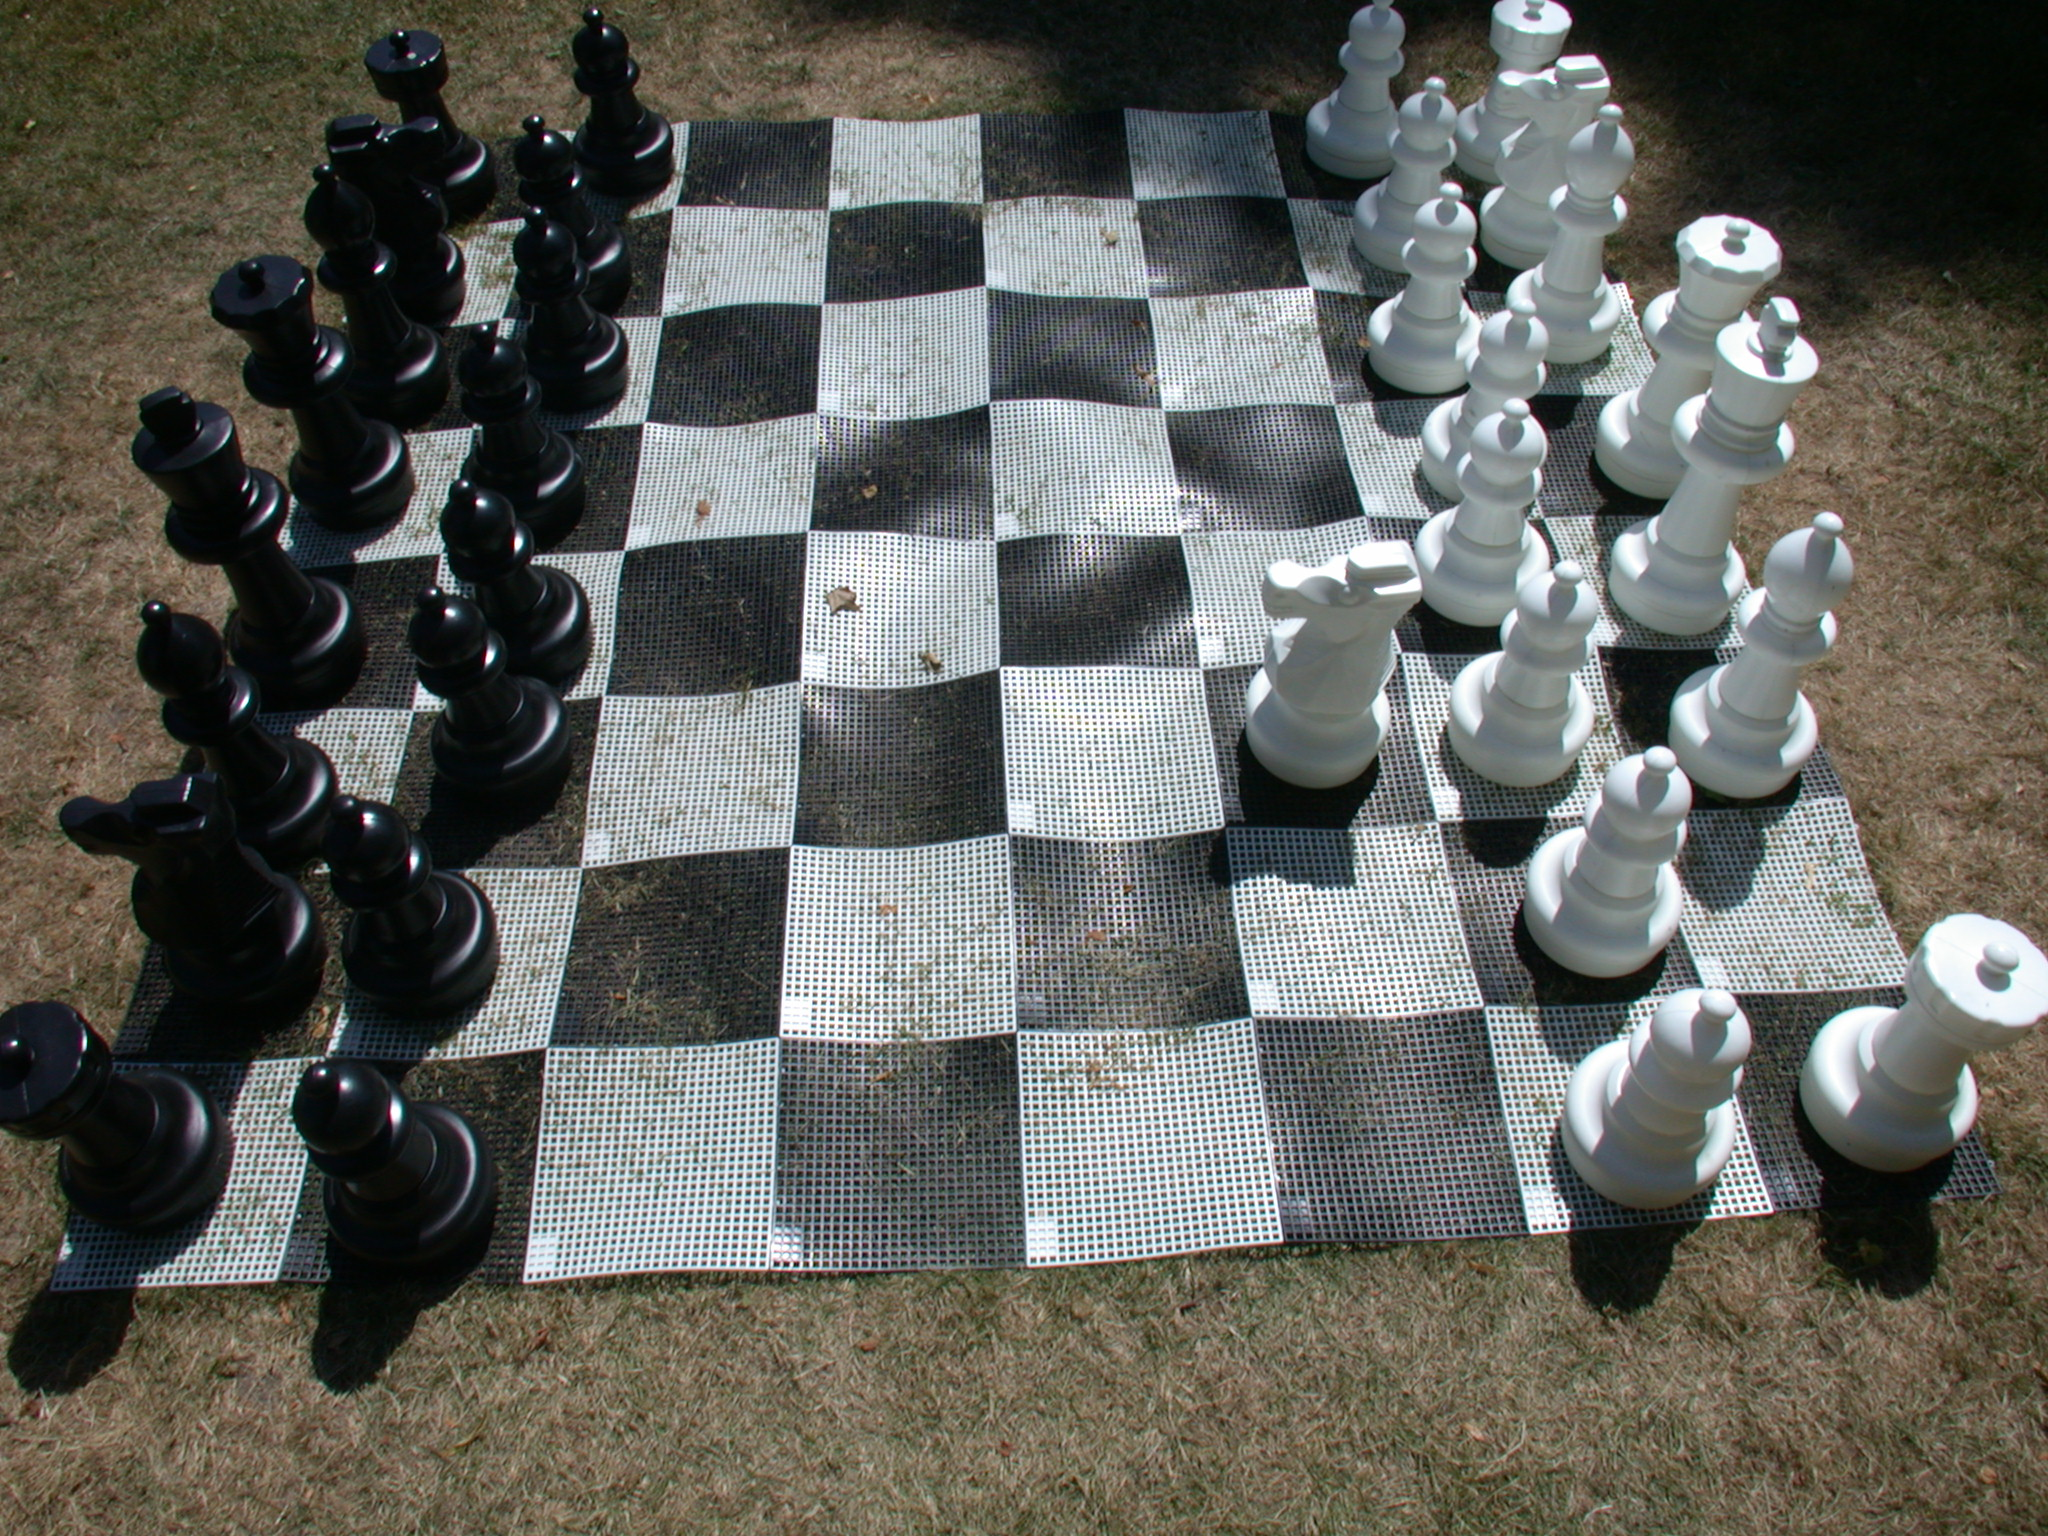 objects games chess game gameset set plastic king queen checkmate texture